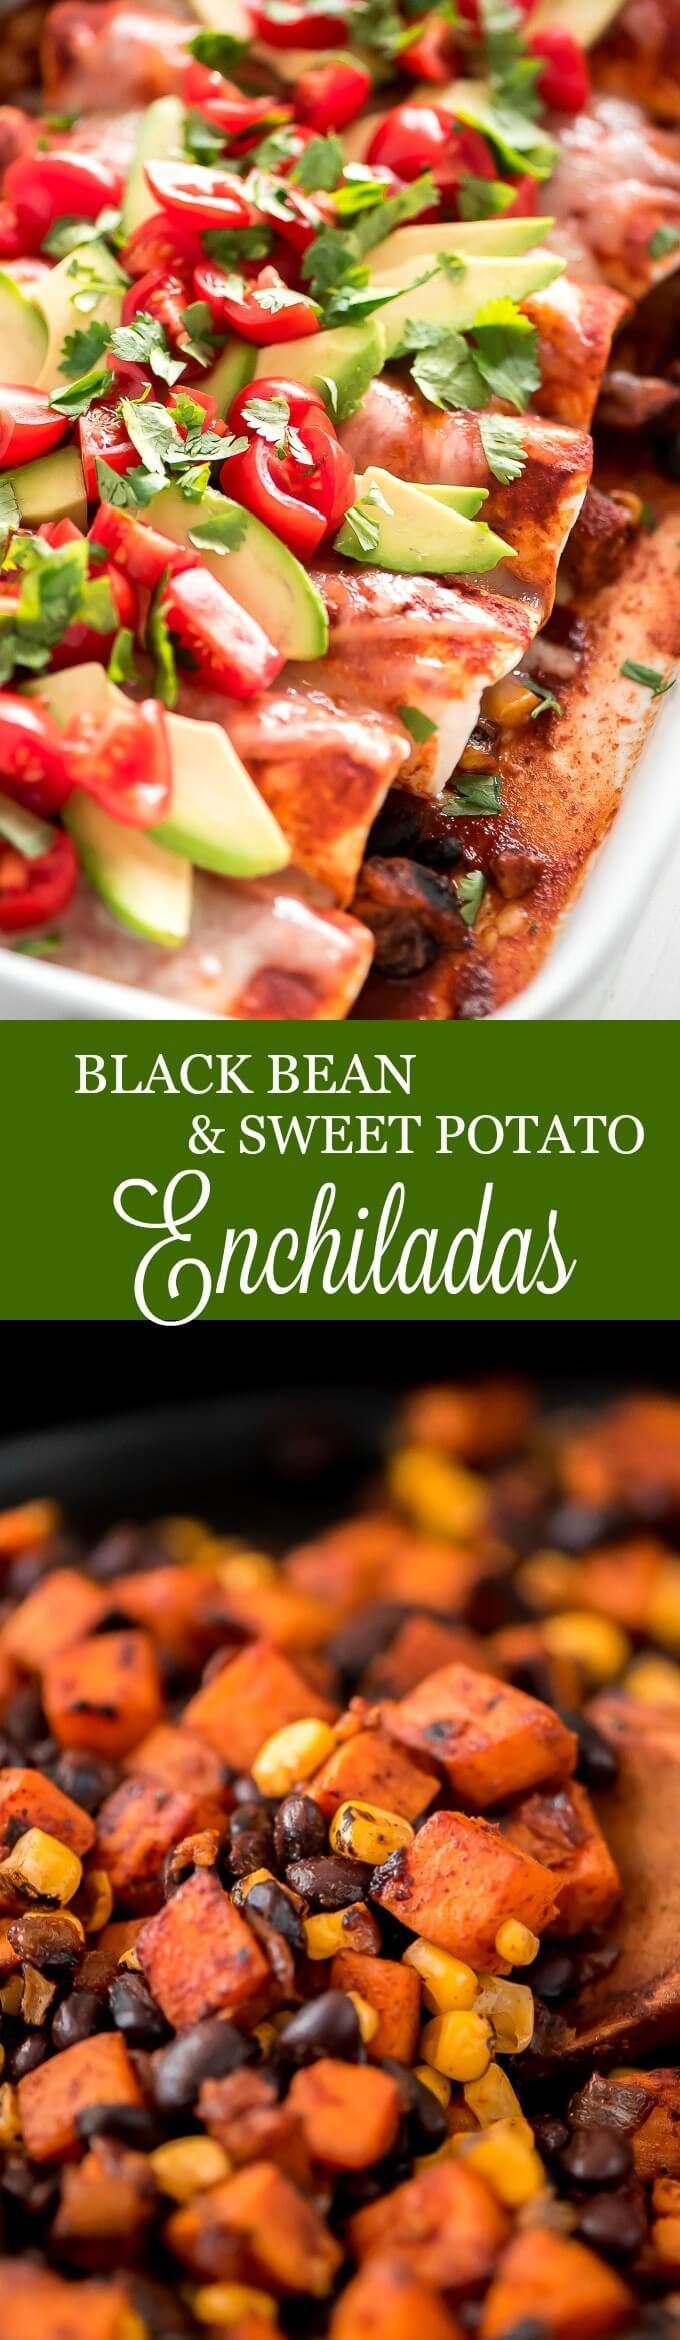 Black Bean and Sweet Potato Enchiladas are a filling, healthy, and inexpensive meatless meal that the whole family will love! #meatlessmonday #mexicanfood #vegetarian #healthyeating